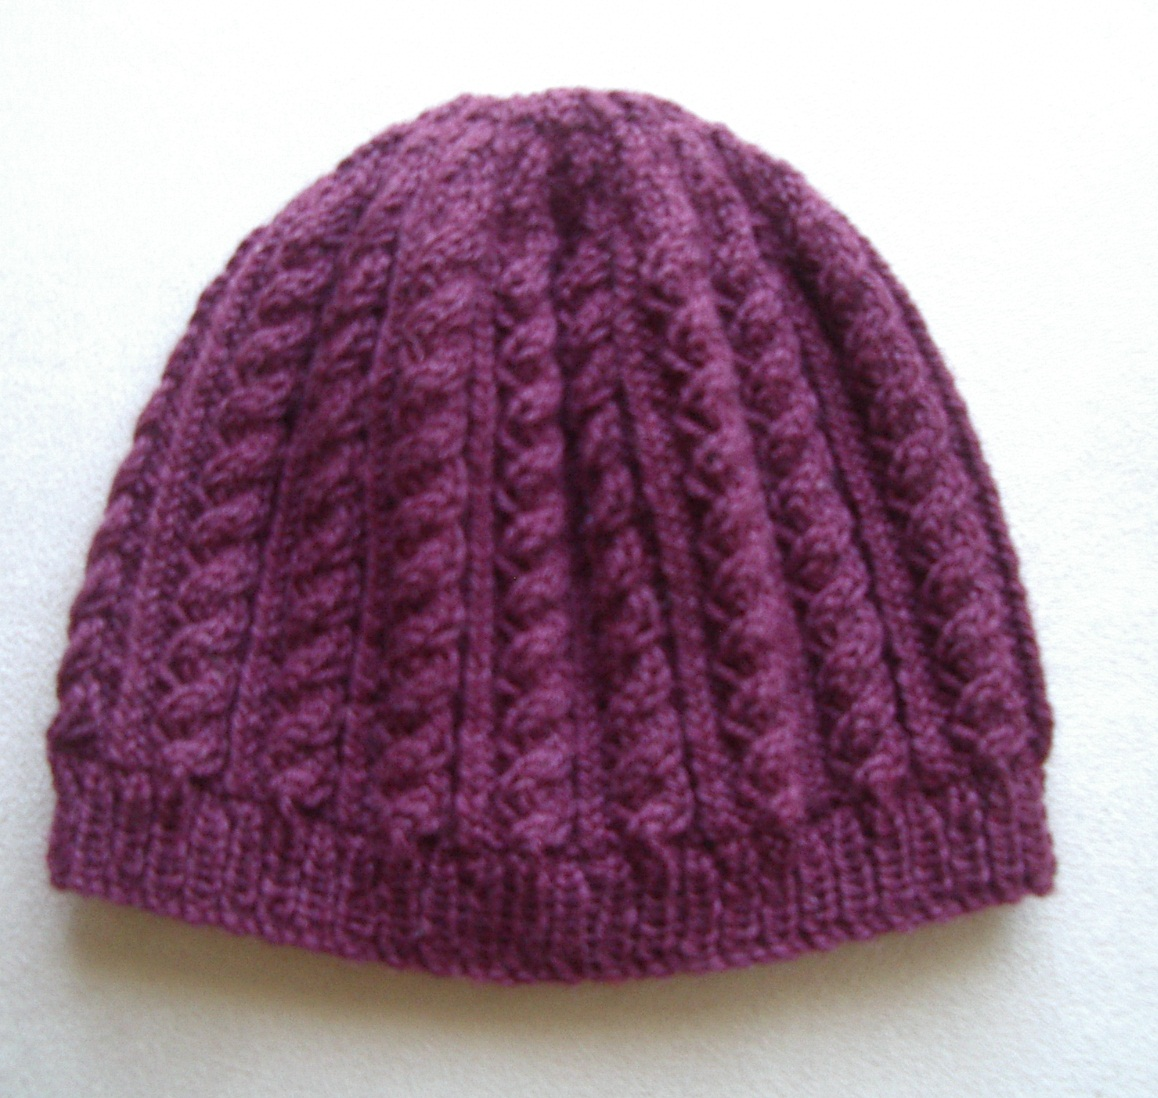 Free Knit Beanie Pattern : Knitting Patterns Online - Knitted Beanie, Scarf and Headband Patterns